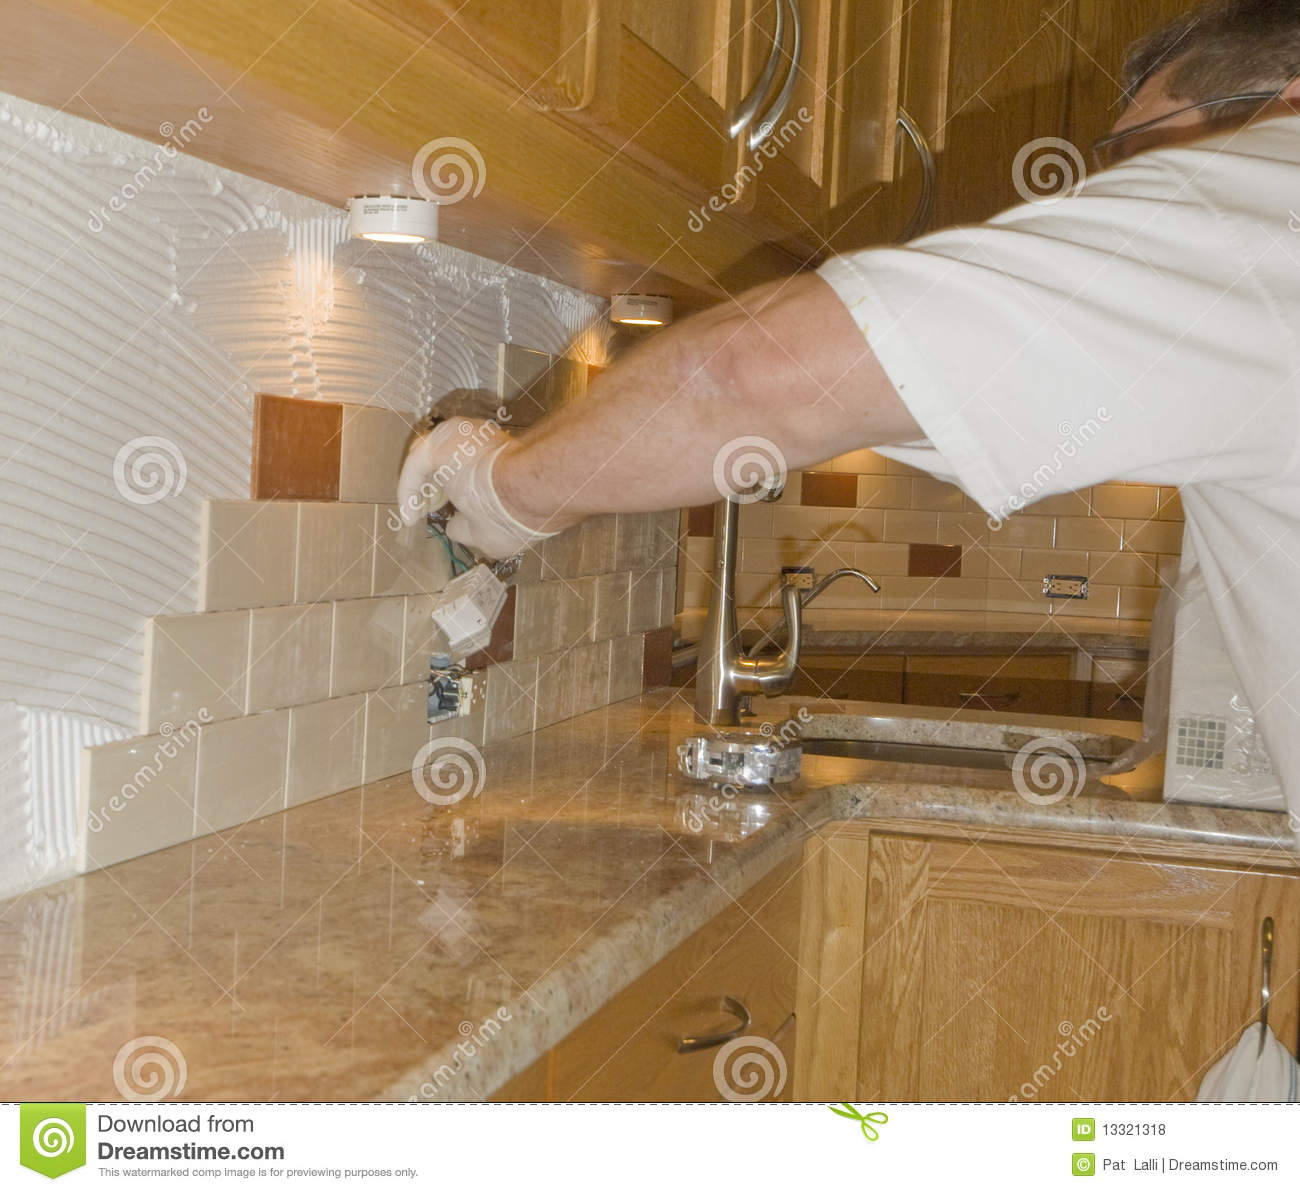 Ceramic Tile Installation On Kitchen Backsplash 12 Royalty Free Stock Photos Image 13321318